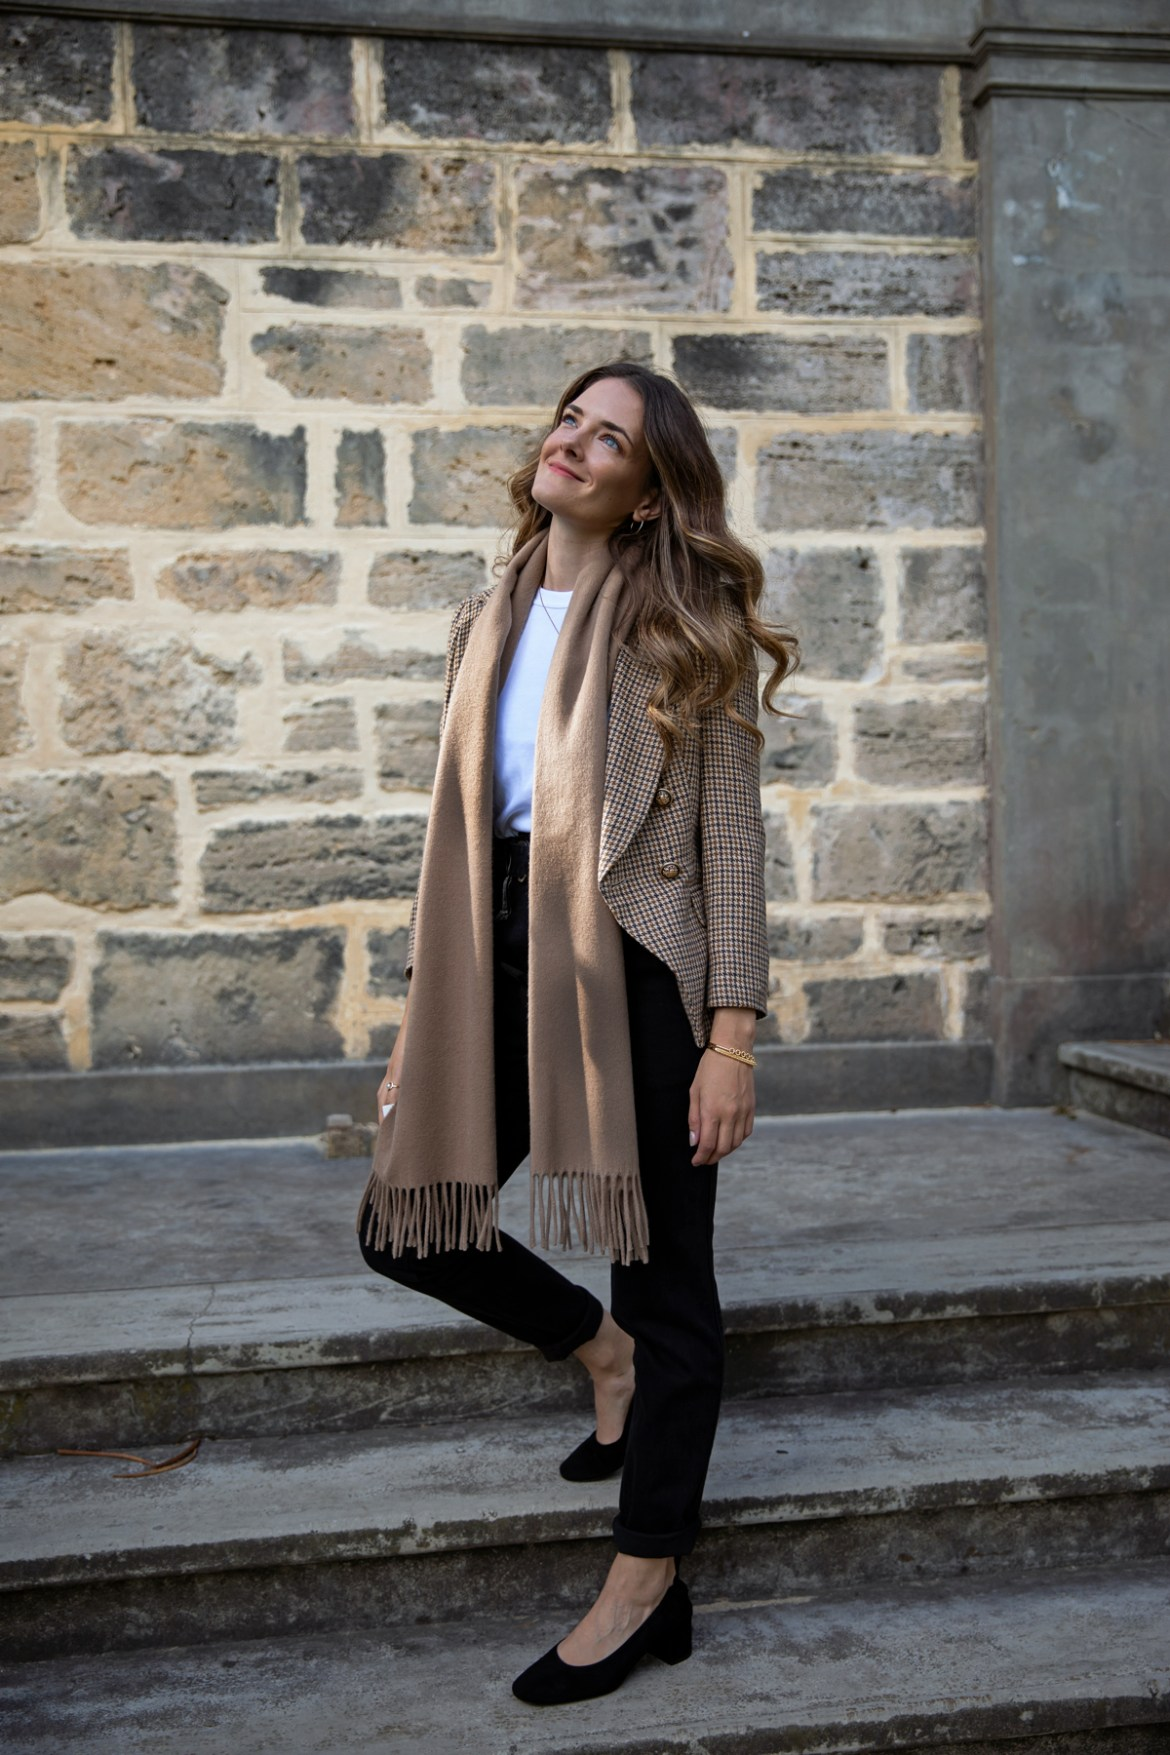 beige Acne Studios scarf outfit idea with check blazer for autumn or fall